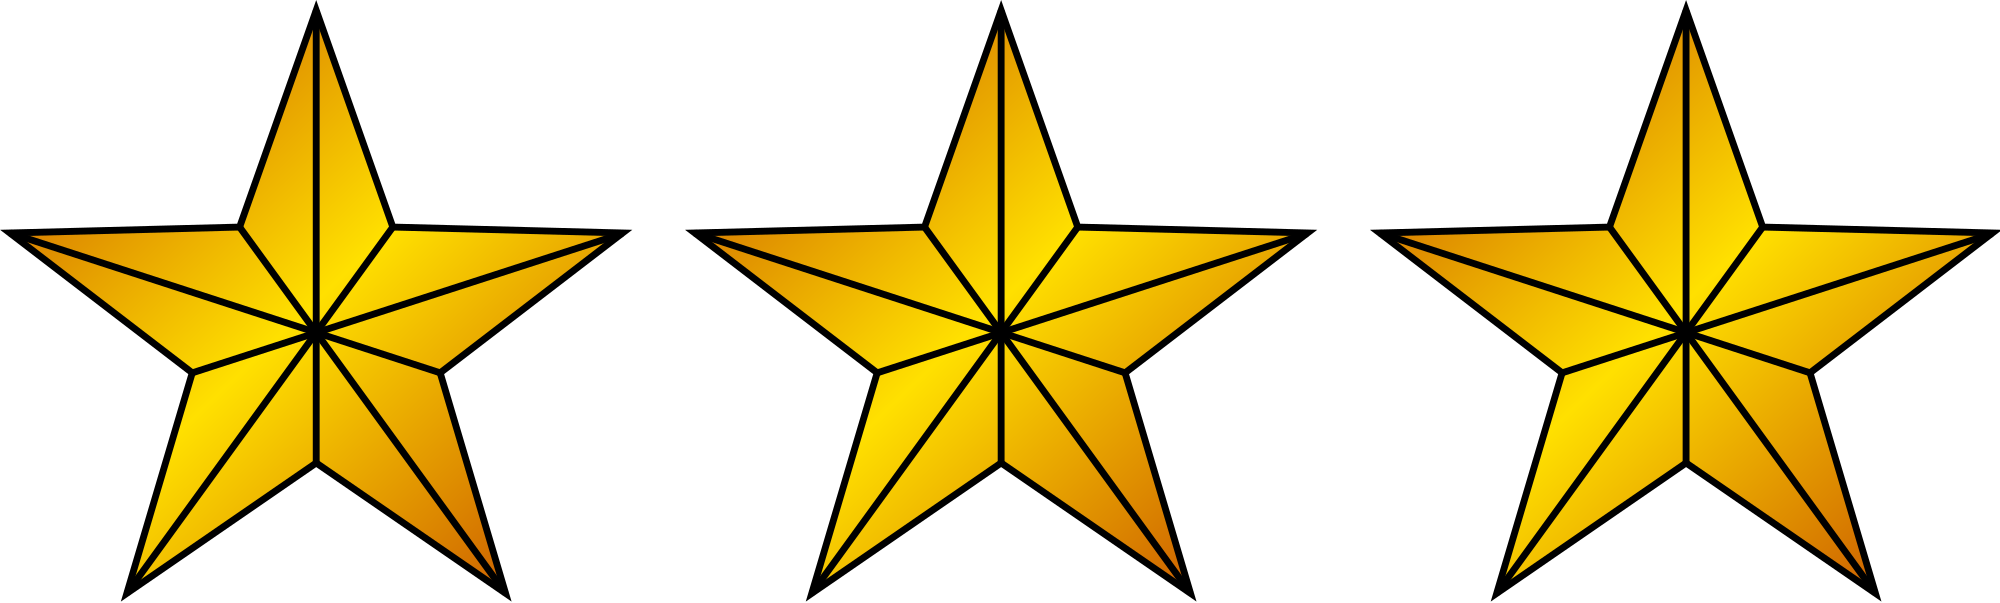 Gold star border clipart freeuse download File:3 Gold Stars.svg - Wikimedia Commons freeuse download